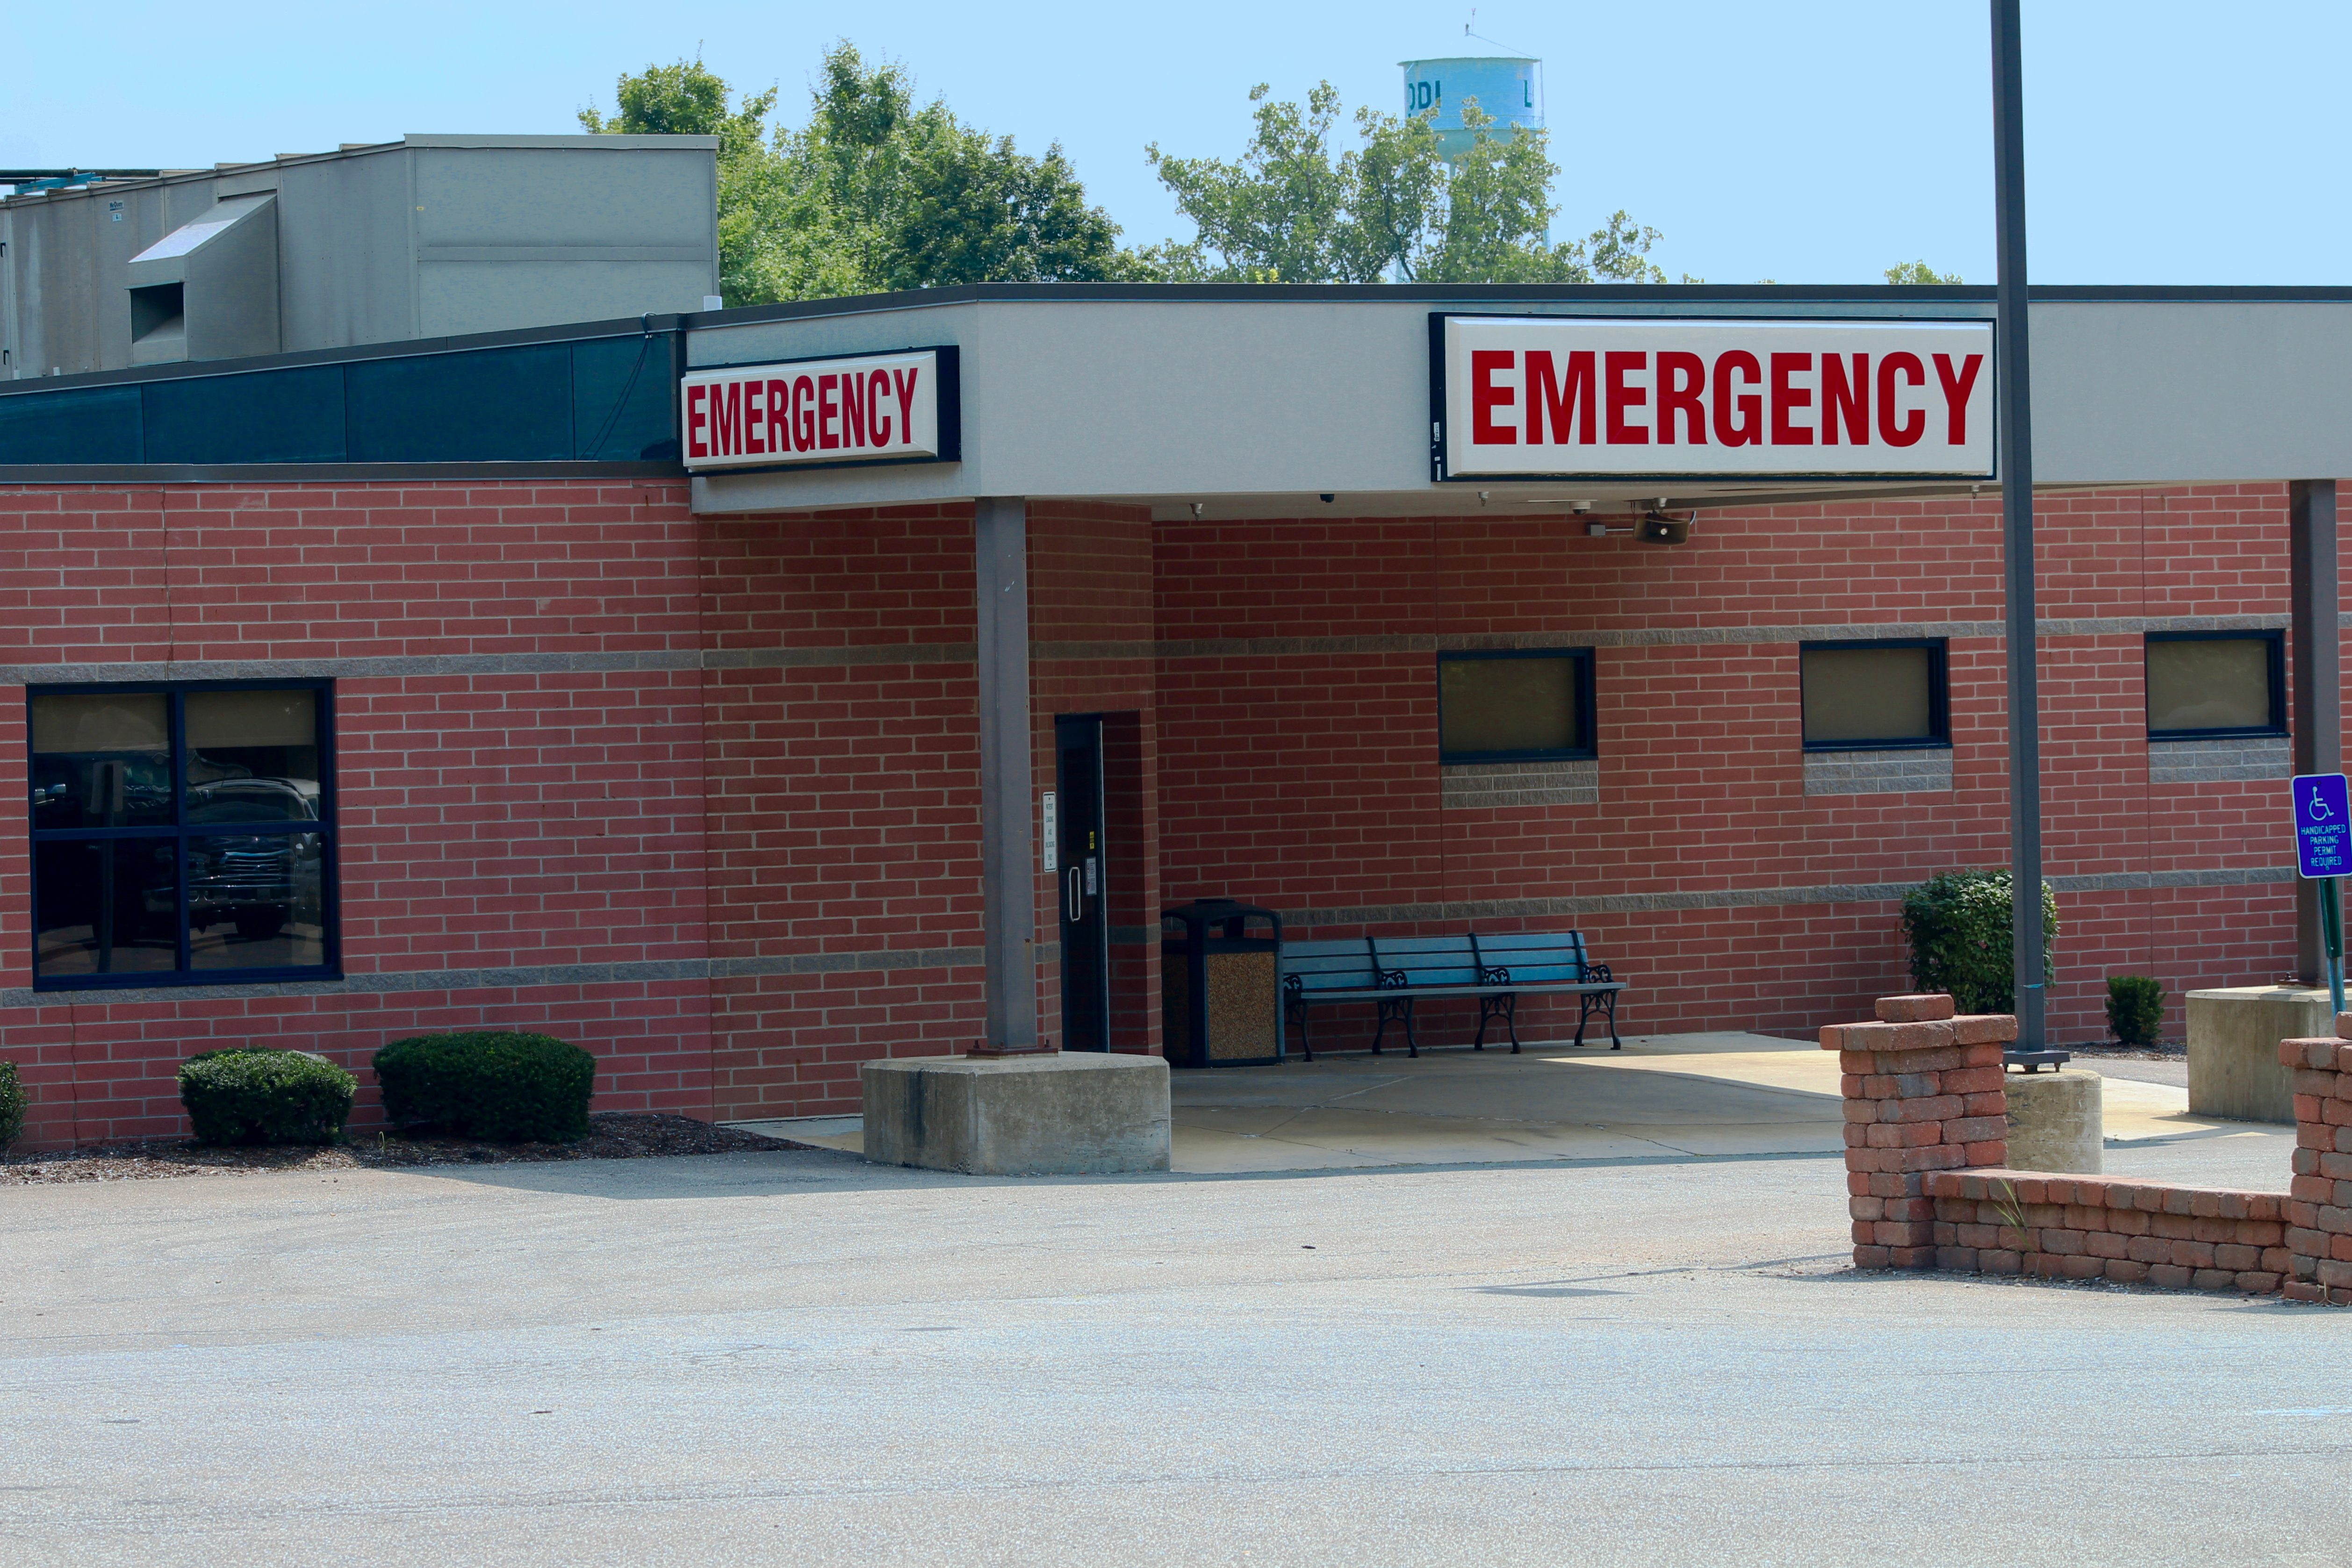 Rural Hospital Closures and the Impact on Hospital Emergency Preparedness